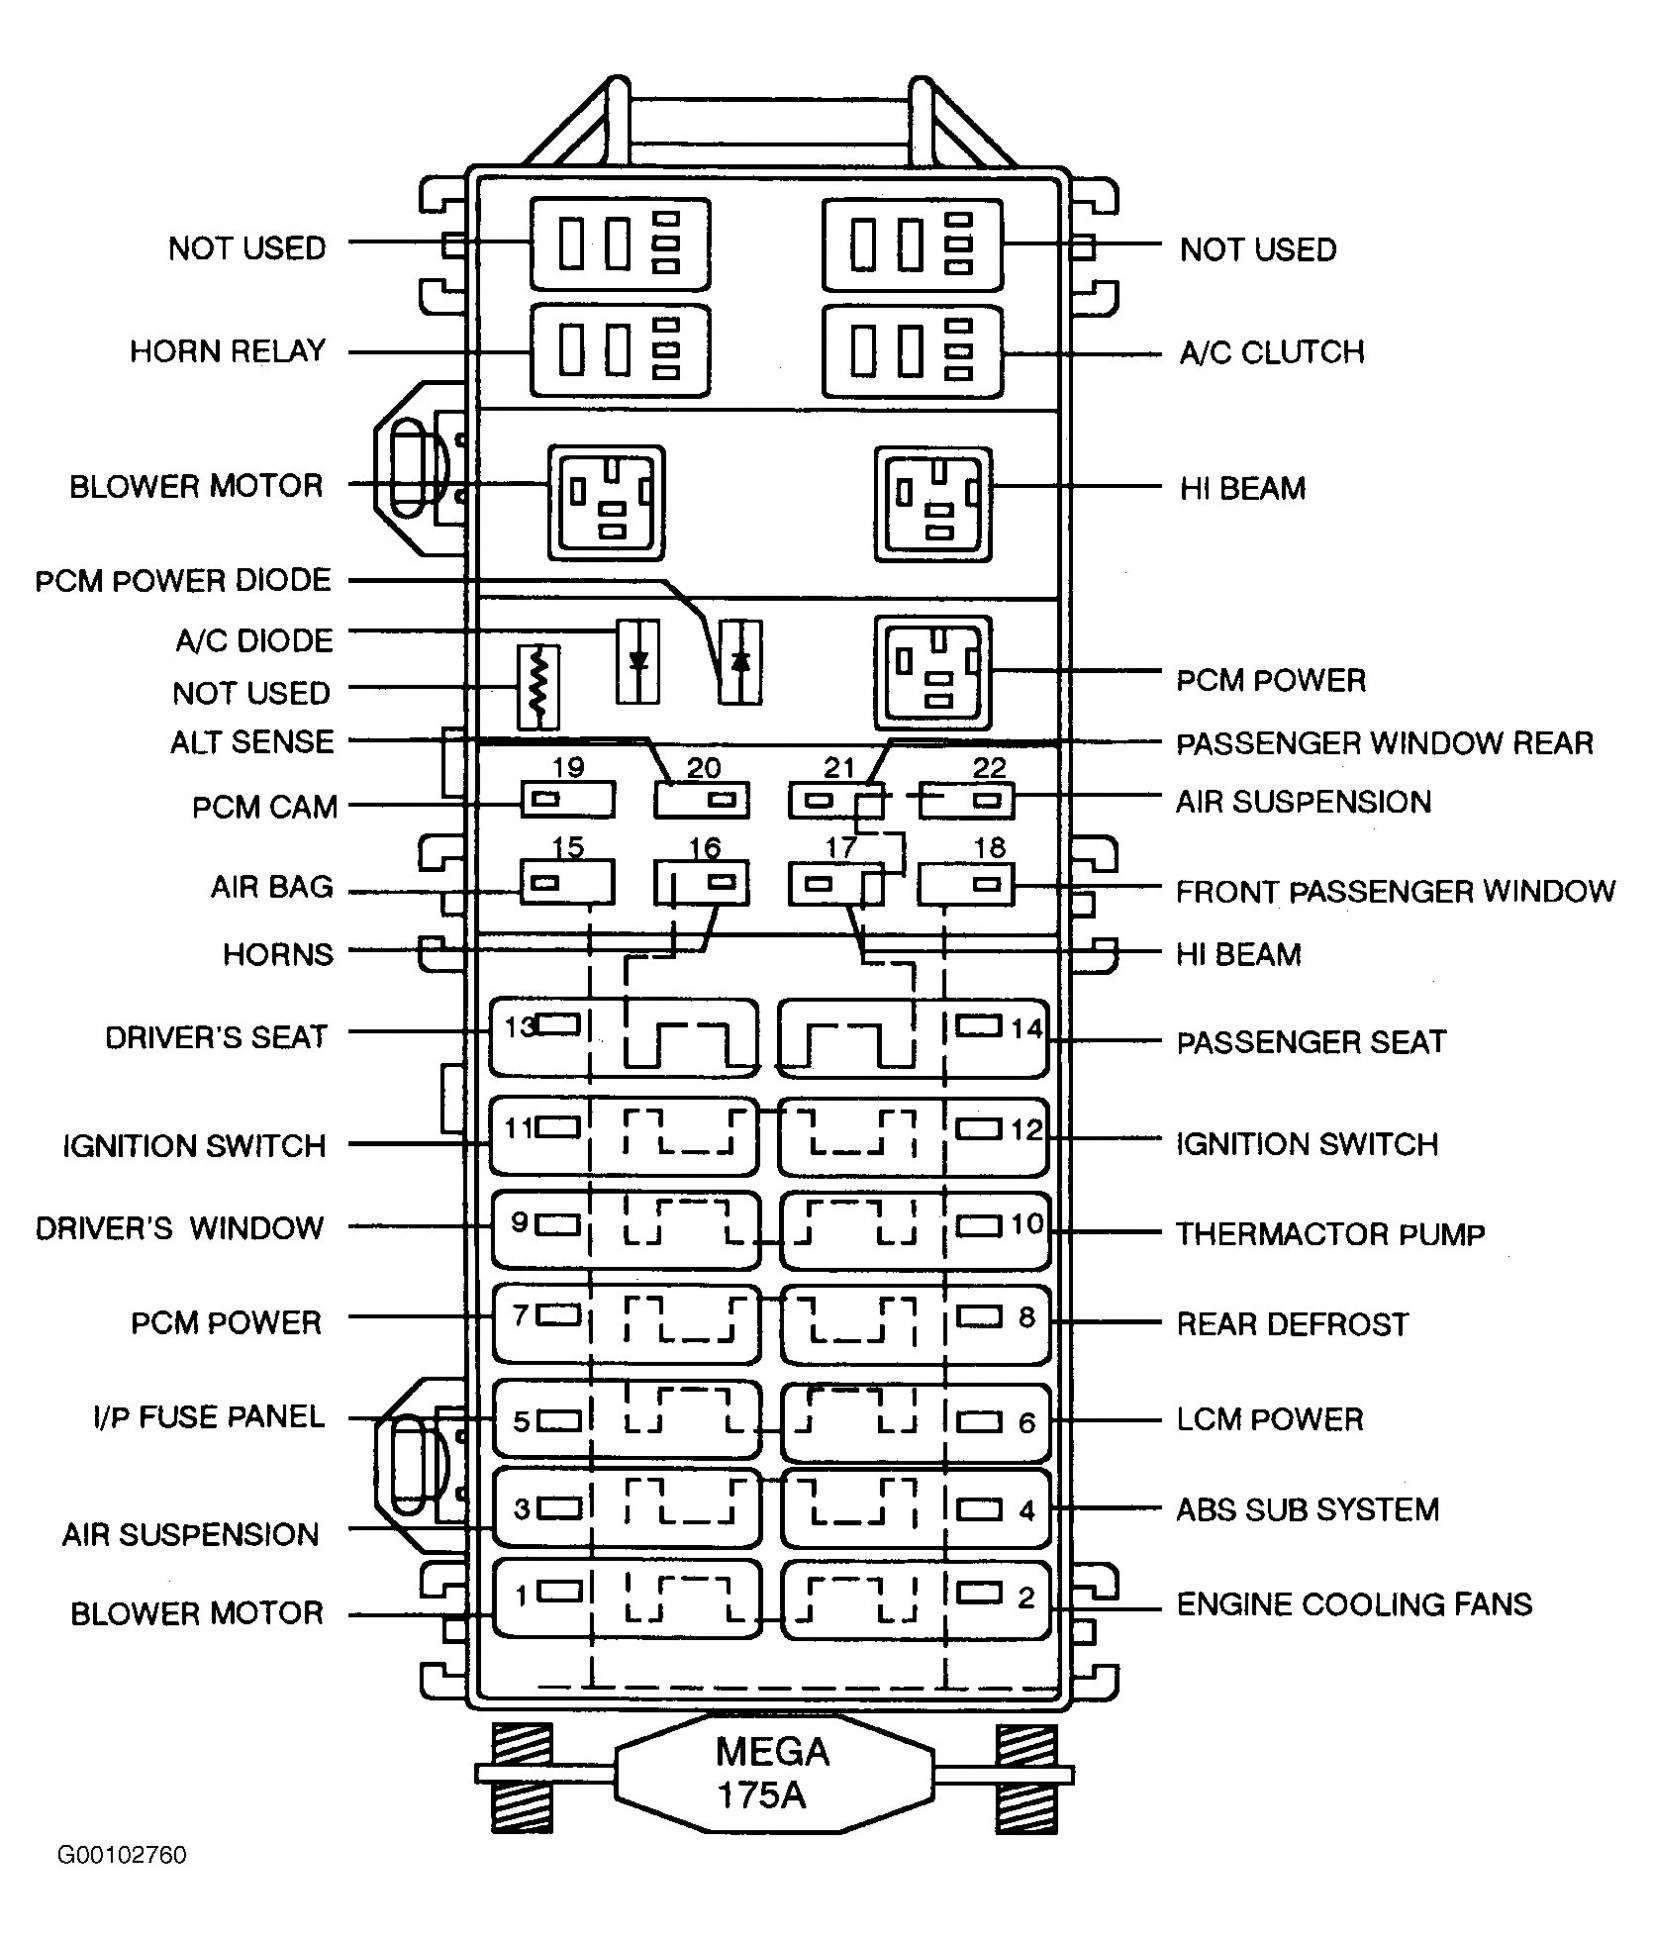 2001 Lincoln town Car Fuse Box Diagram 2001 Lincoln town Car Fuse Box Diagram — Daytonva150